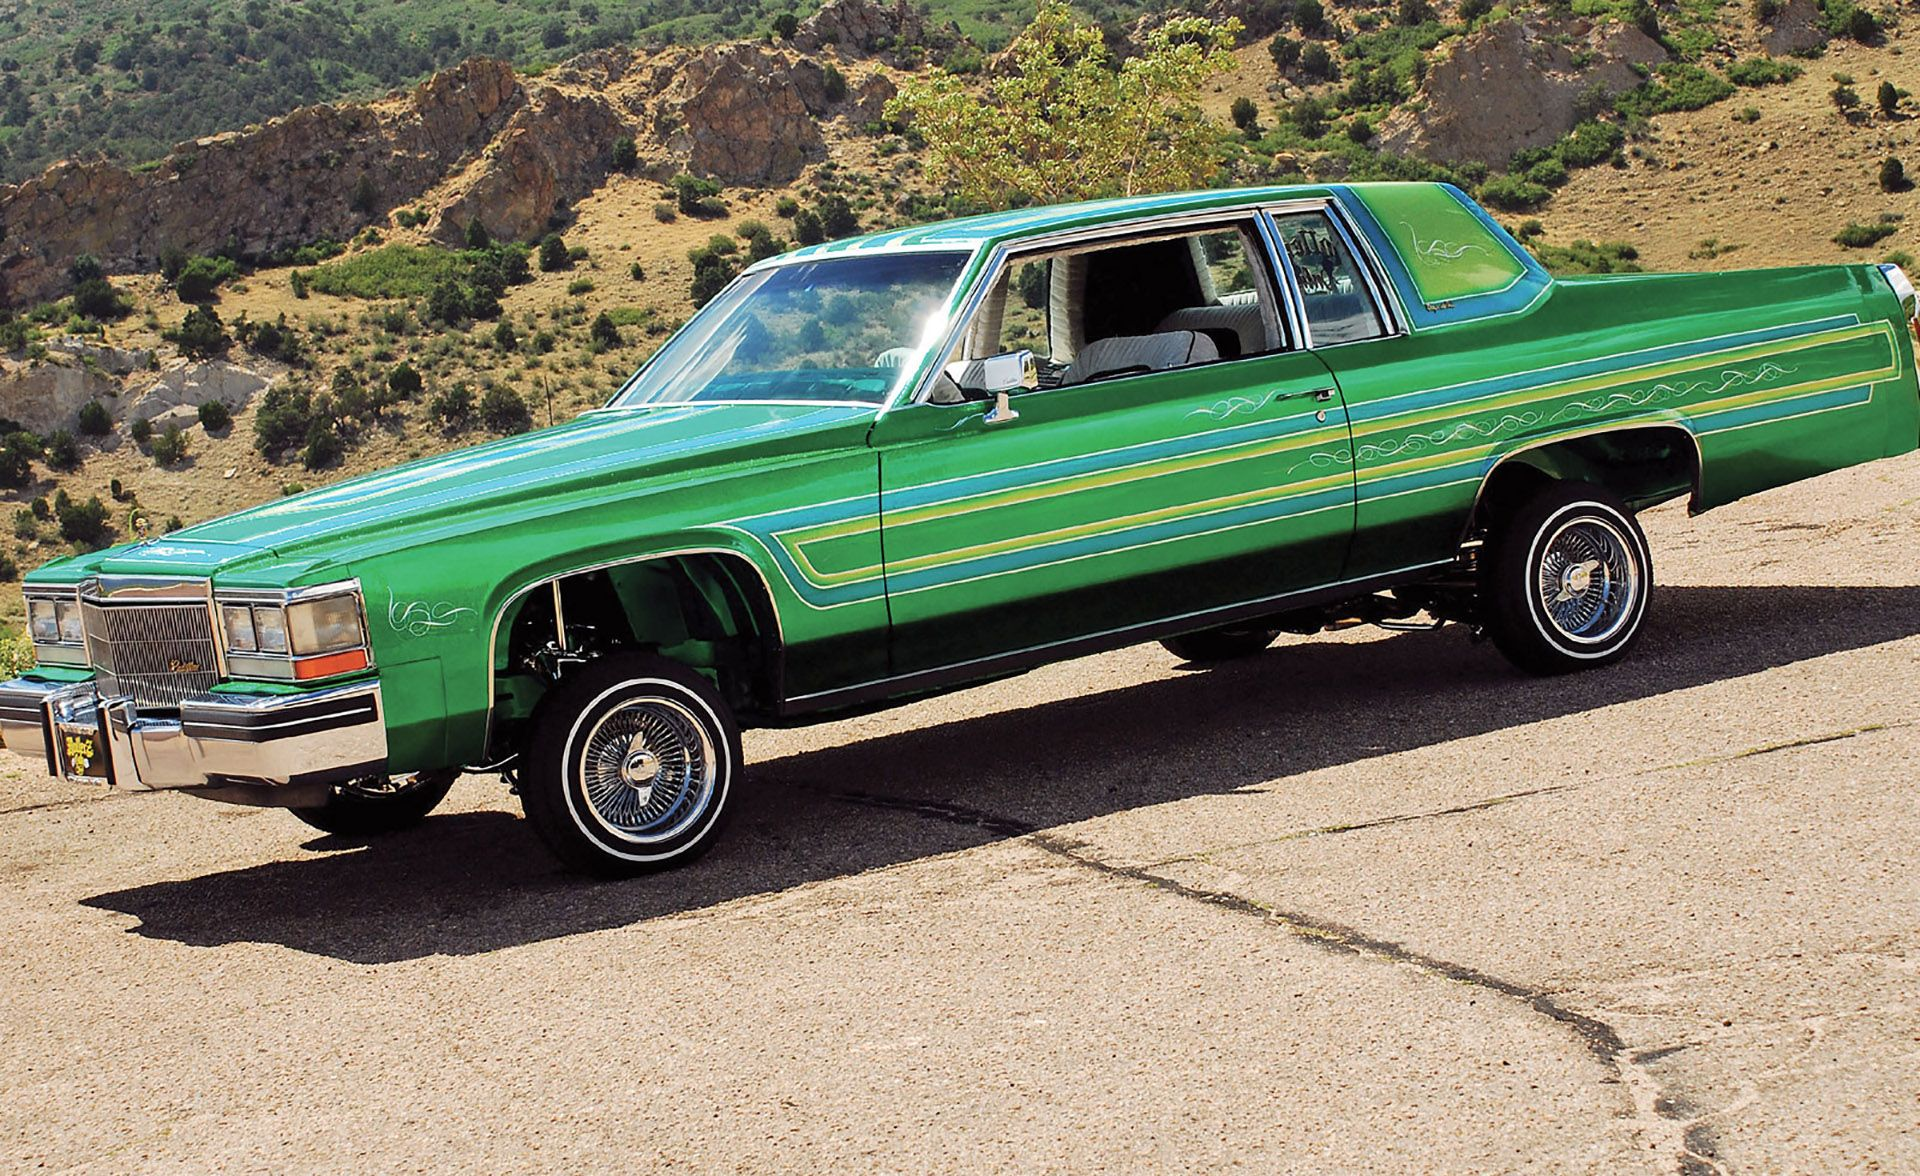 1984 Green Custom Cadillac Coupe Deville Lowrider Vroom